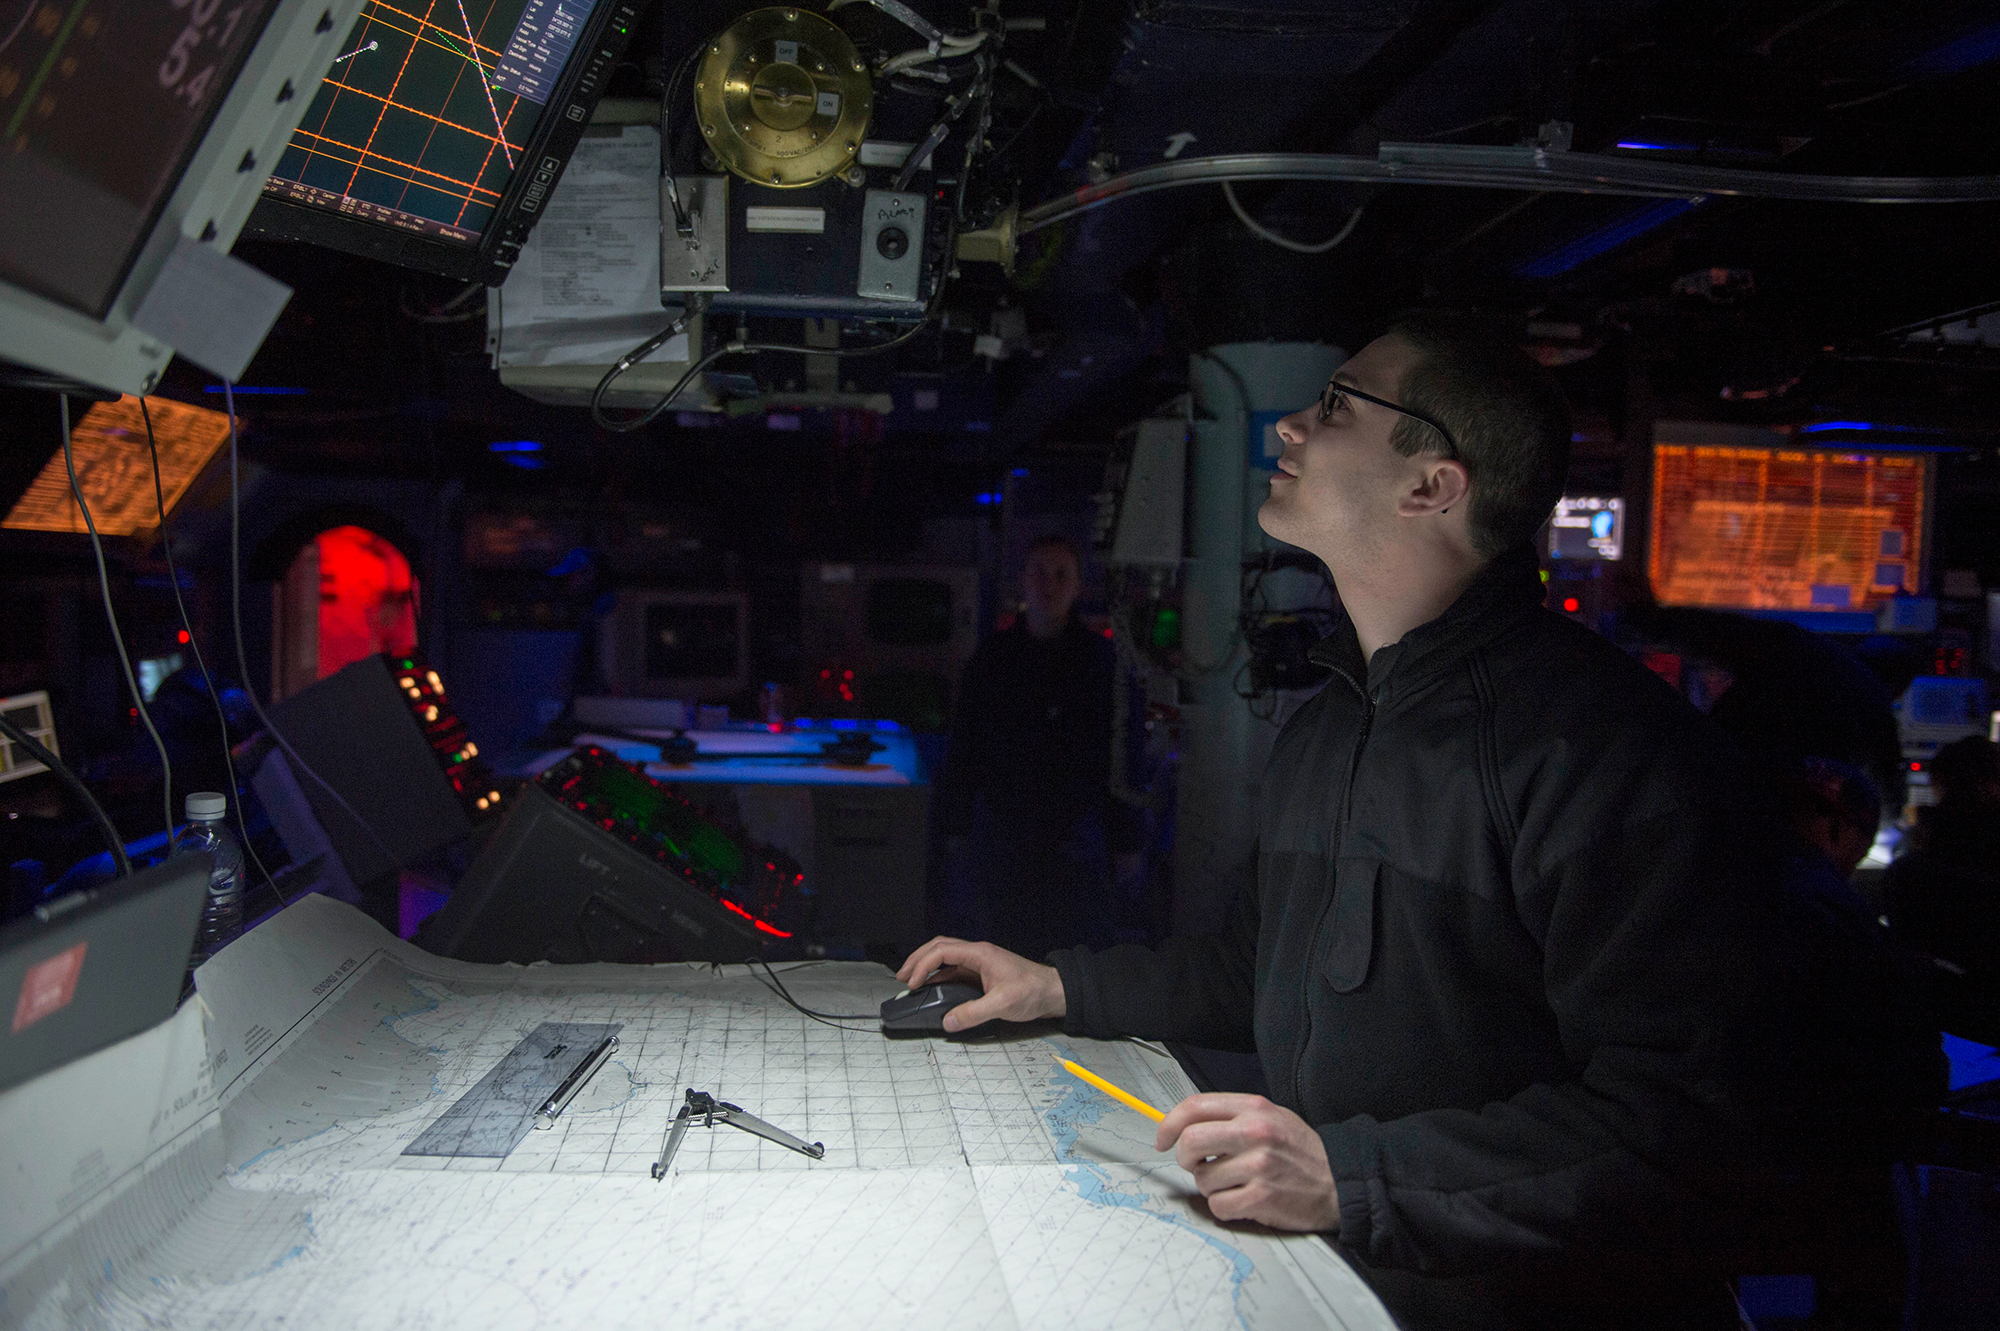 U.S. Navy Brings Back Navigation By The Stars For Officers